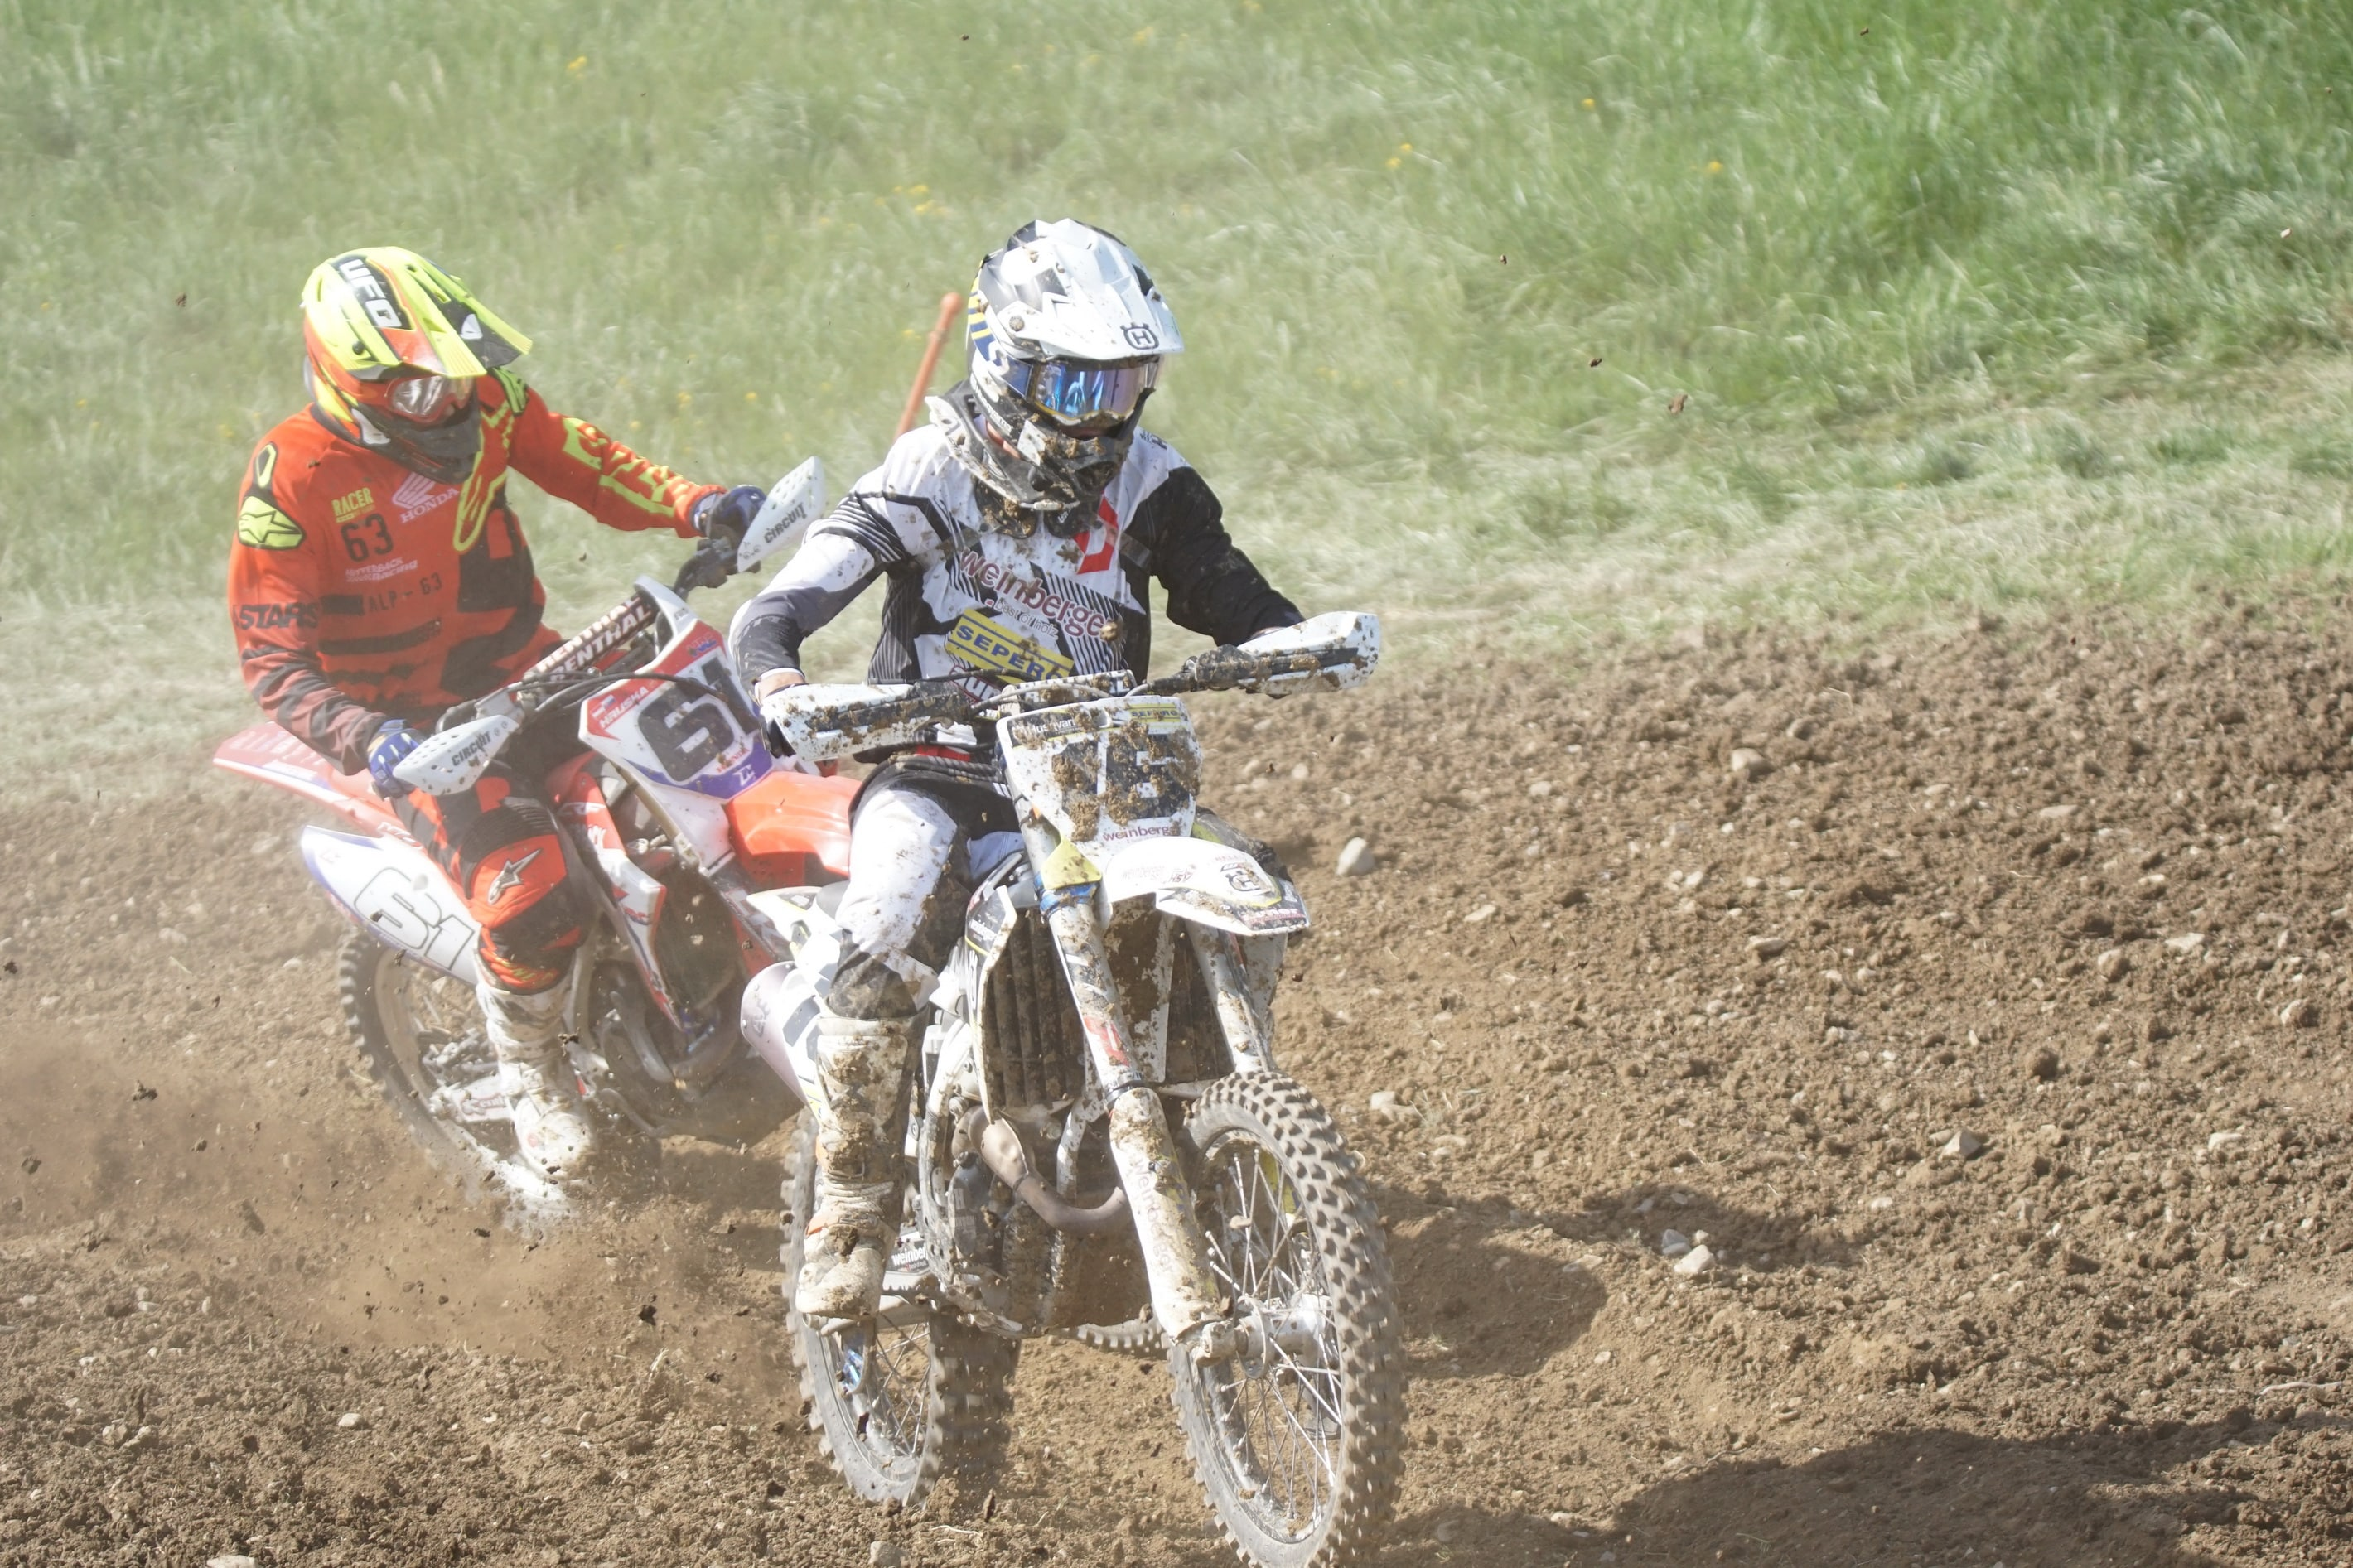 DSC 801_Moto Cross Sittendorf Teil1 am 29.04.2018